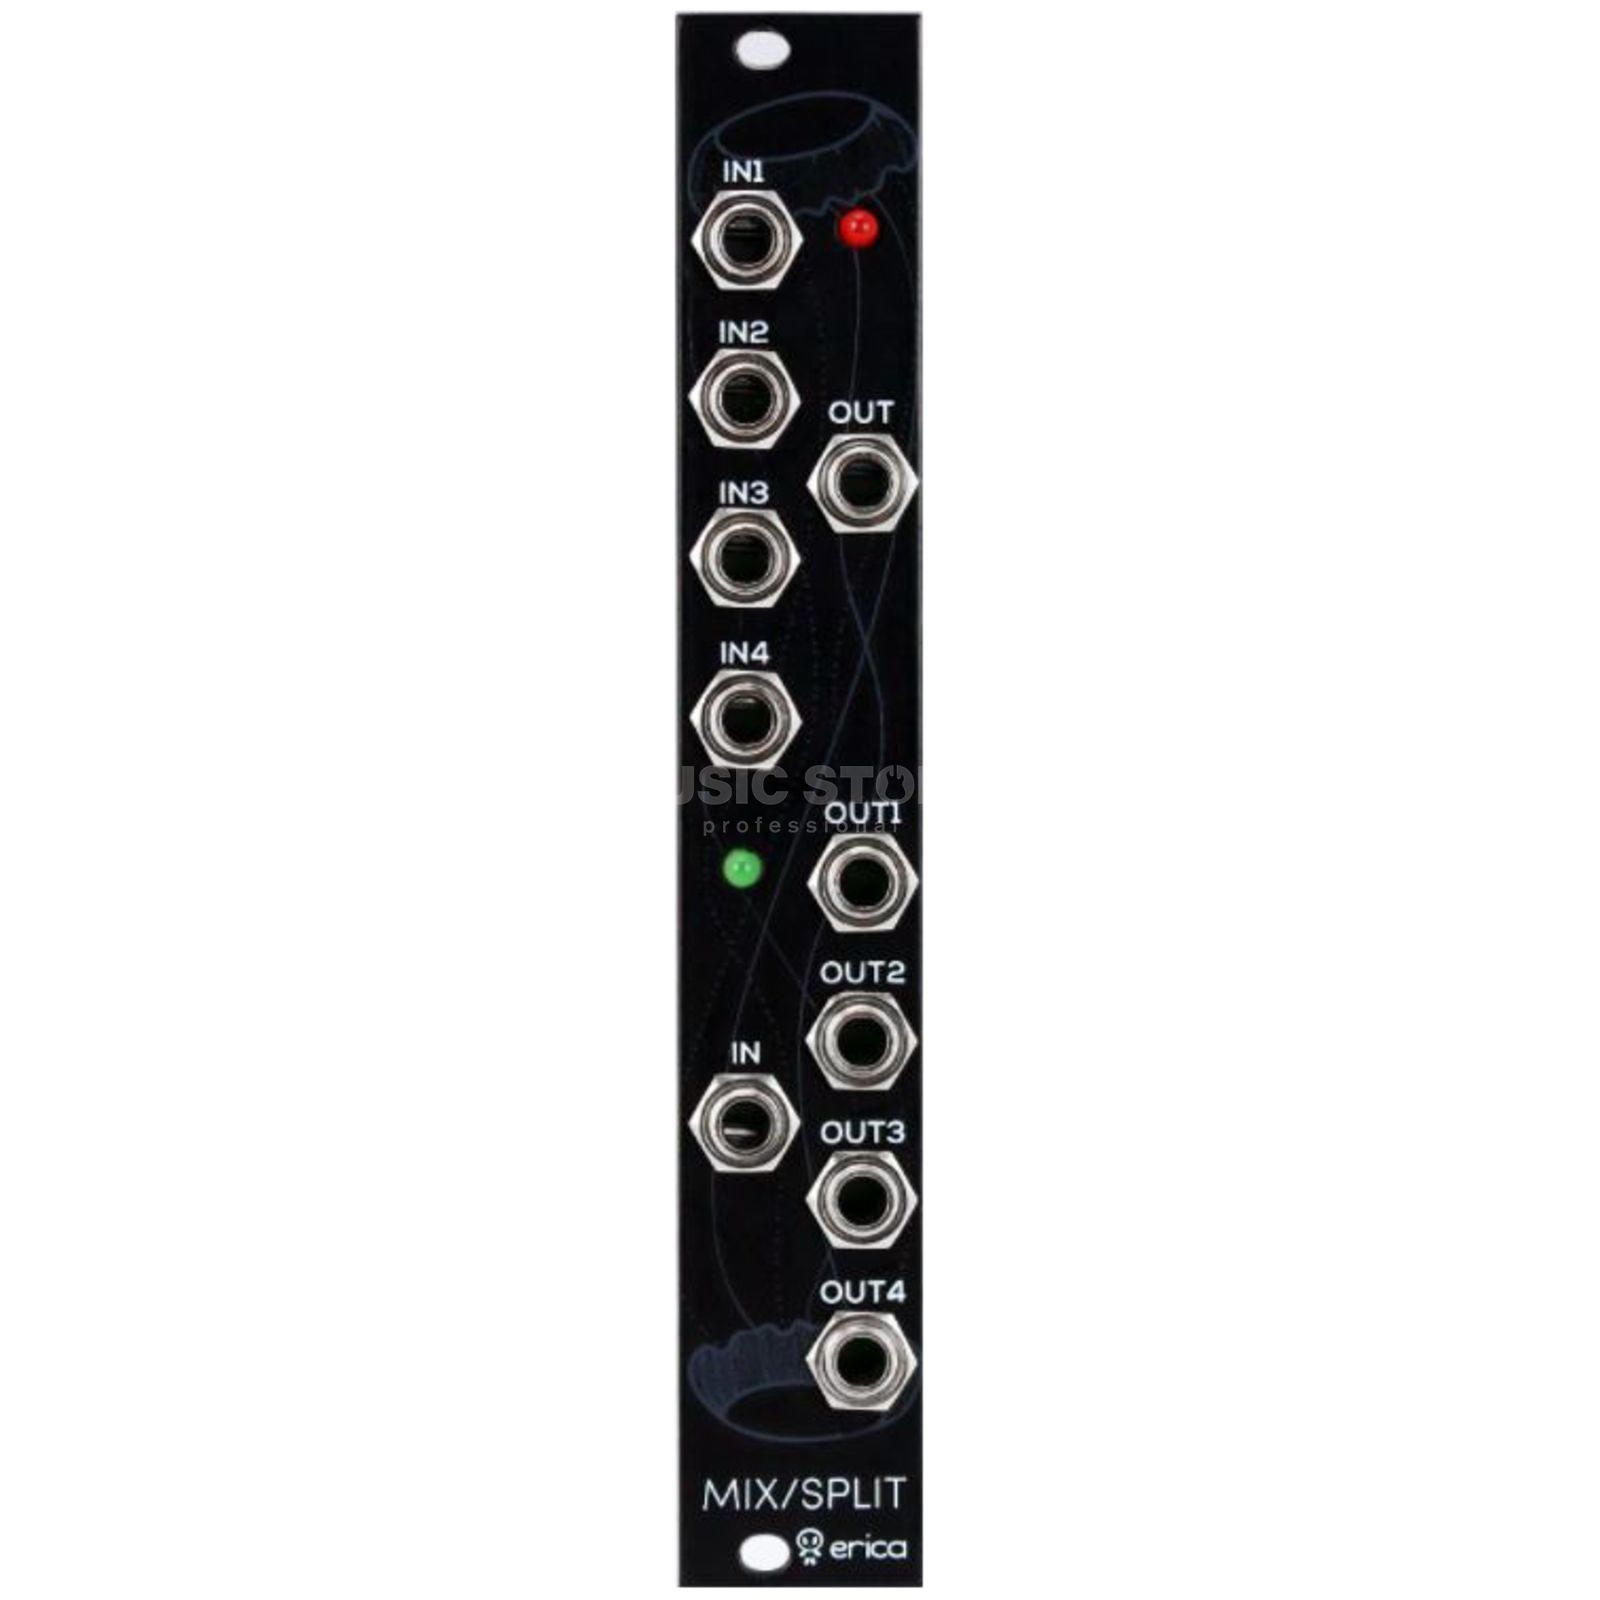 Erica Synths Black Mixer/Splitter v2 Product Image